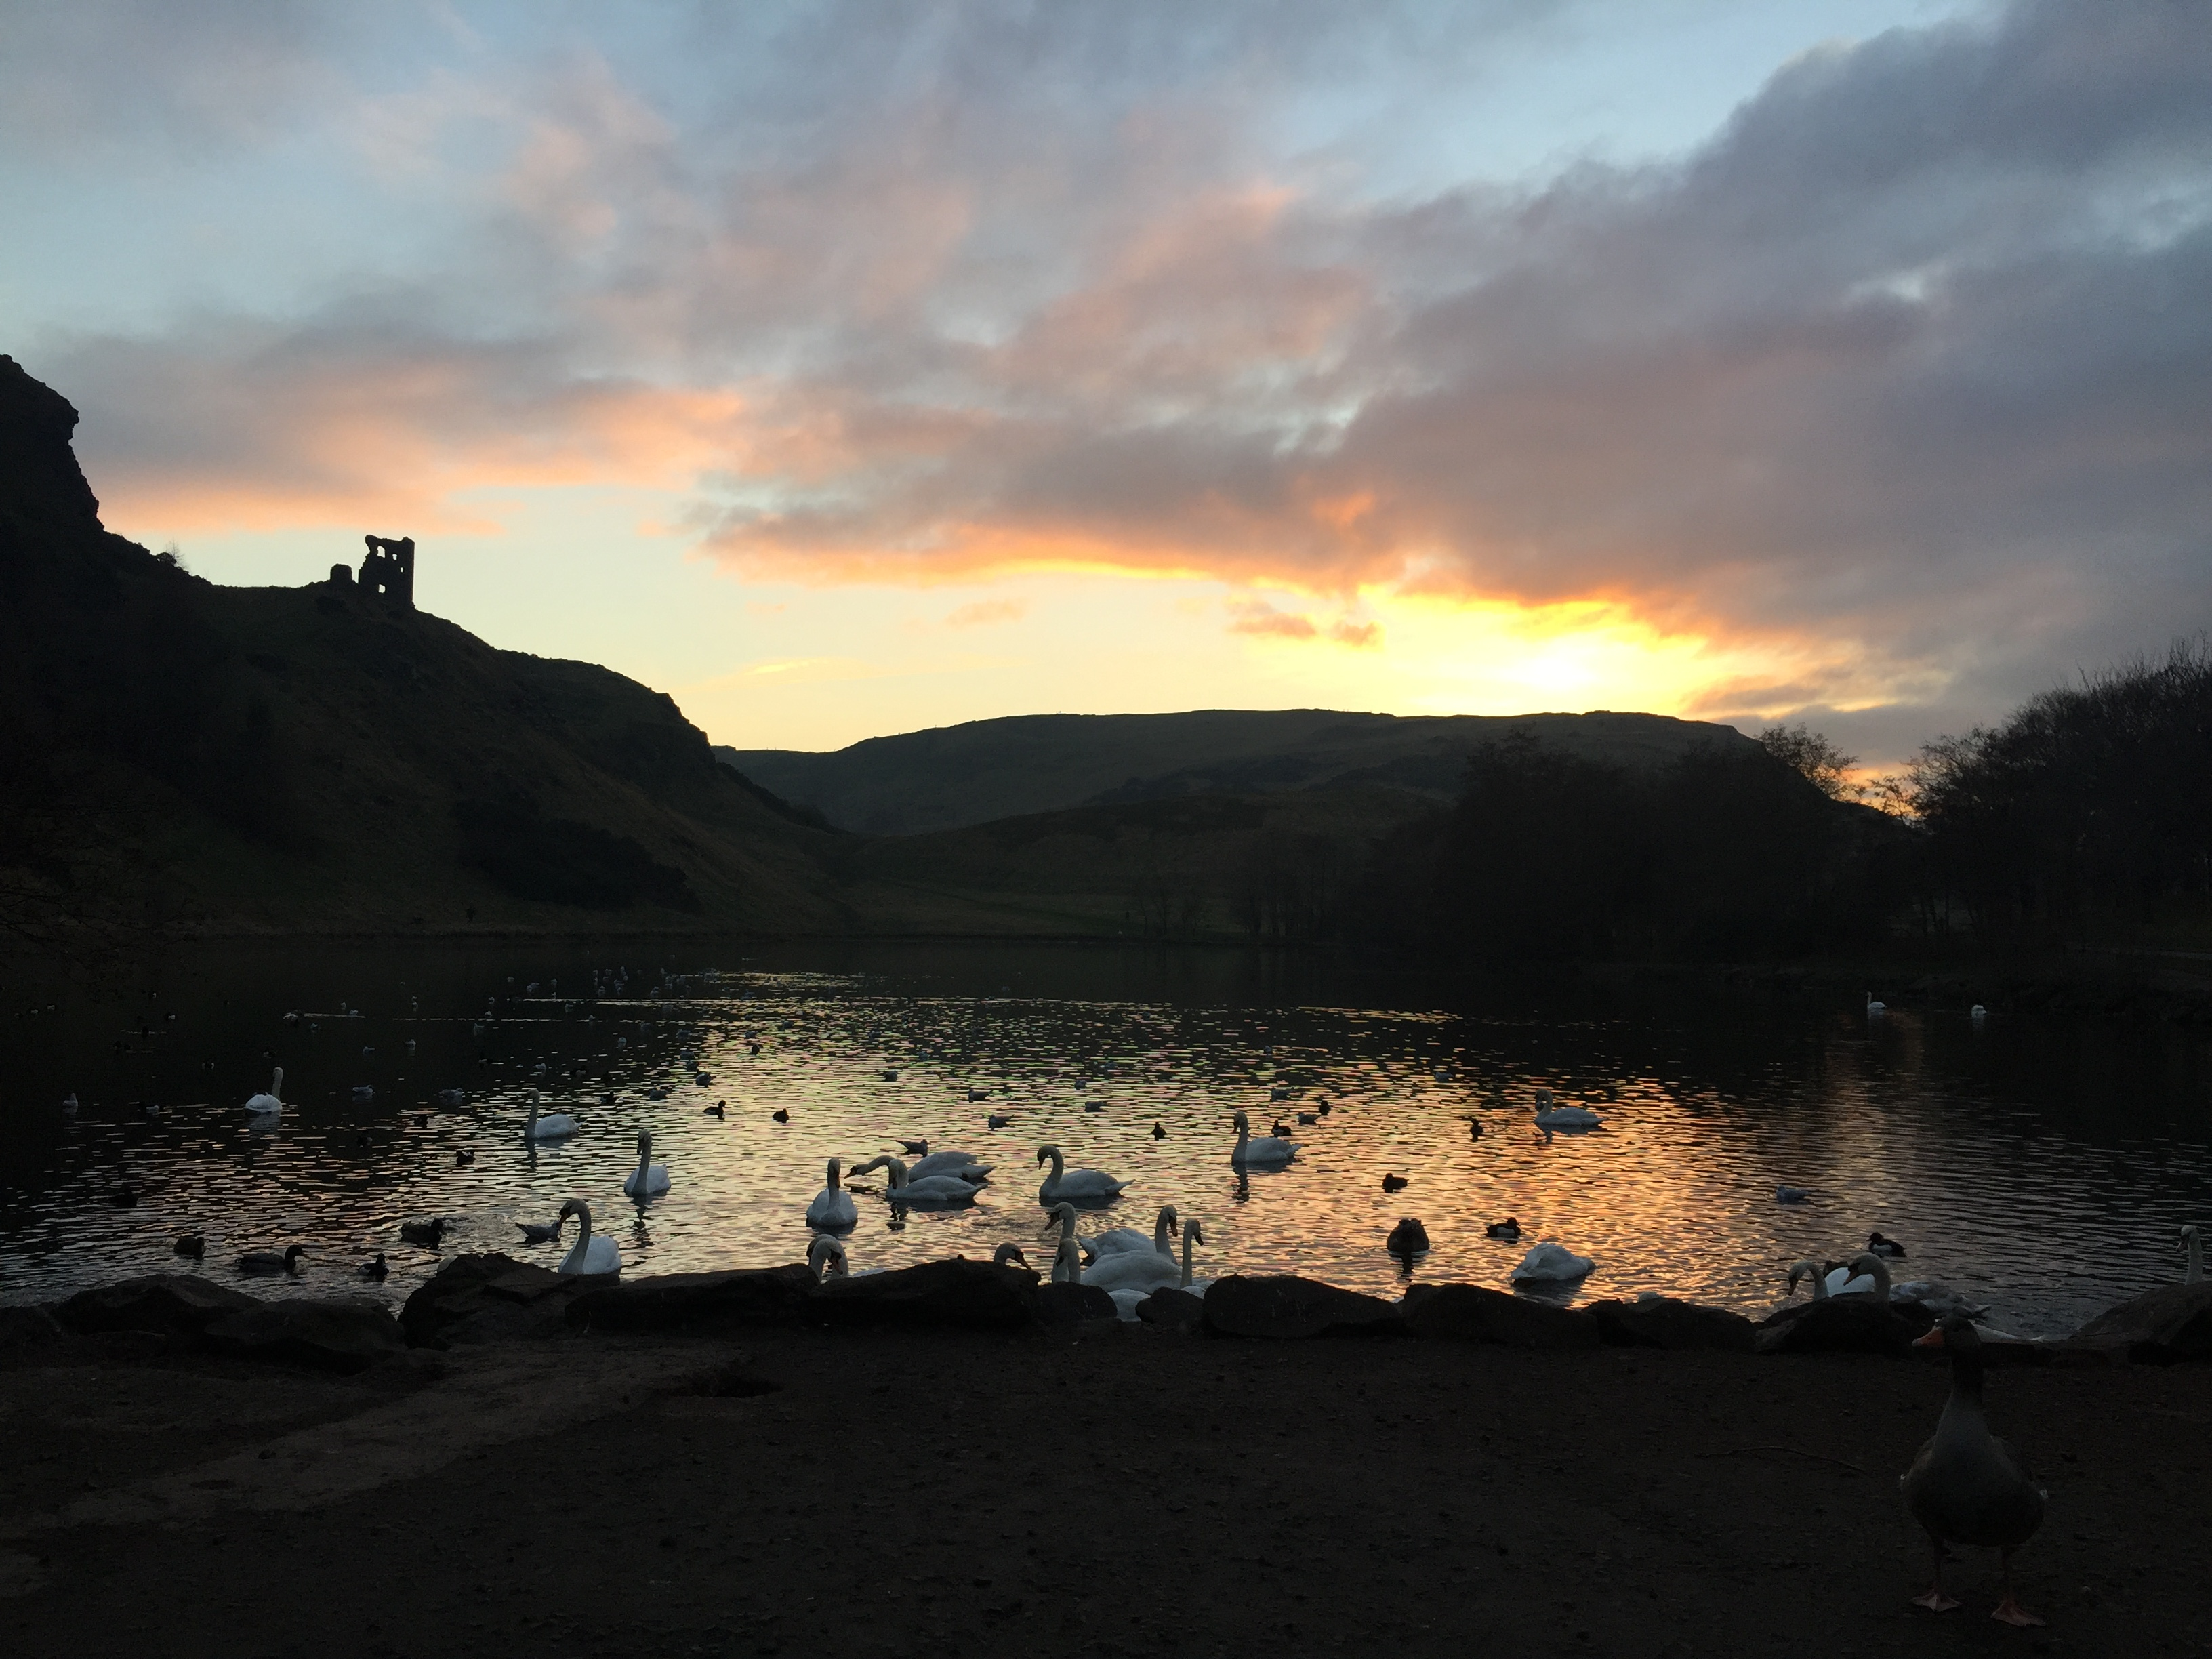 Sunset at Holyrood Park